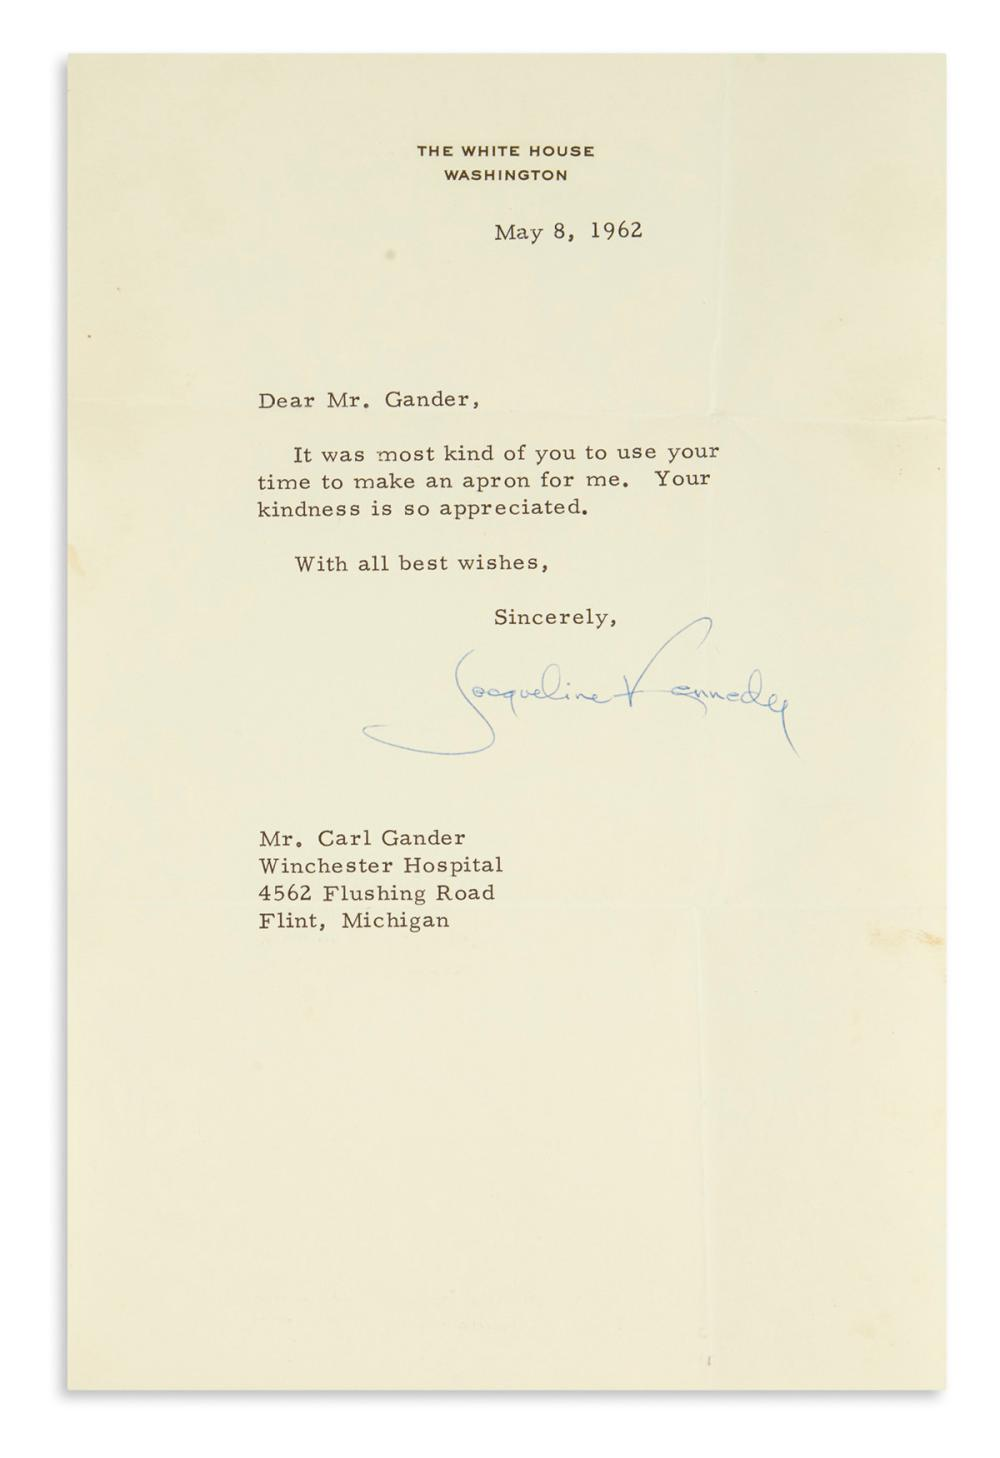 KENNEDY, JACQUELINE. Typed Letter Signed, to Carl Gander,